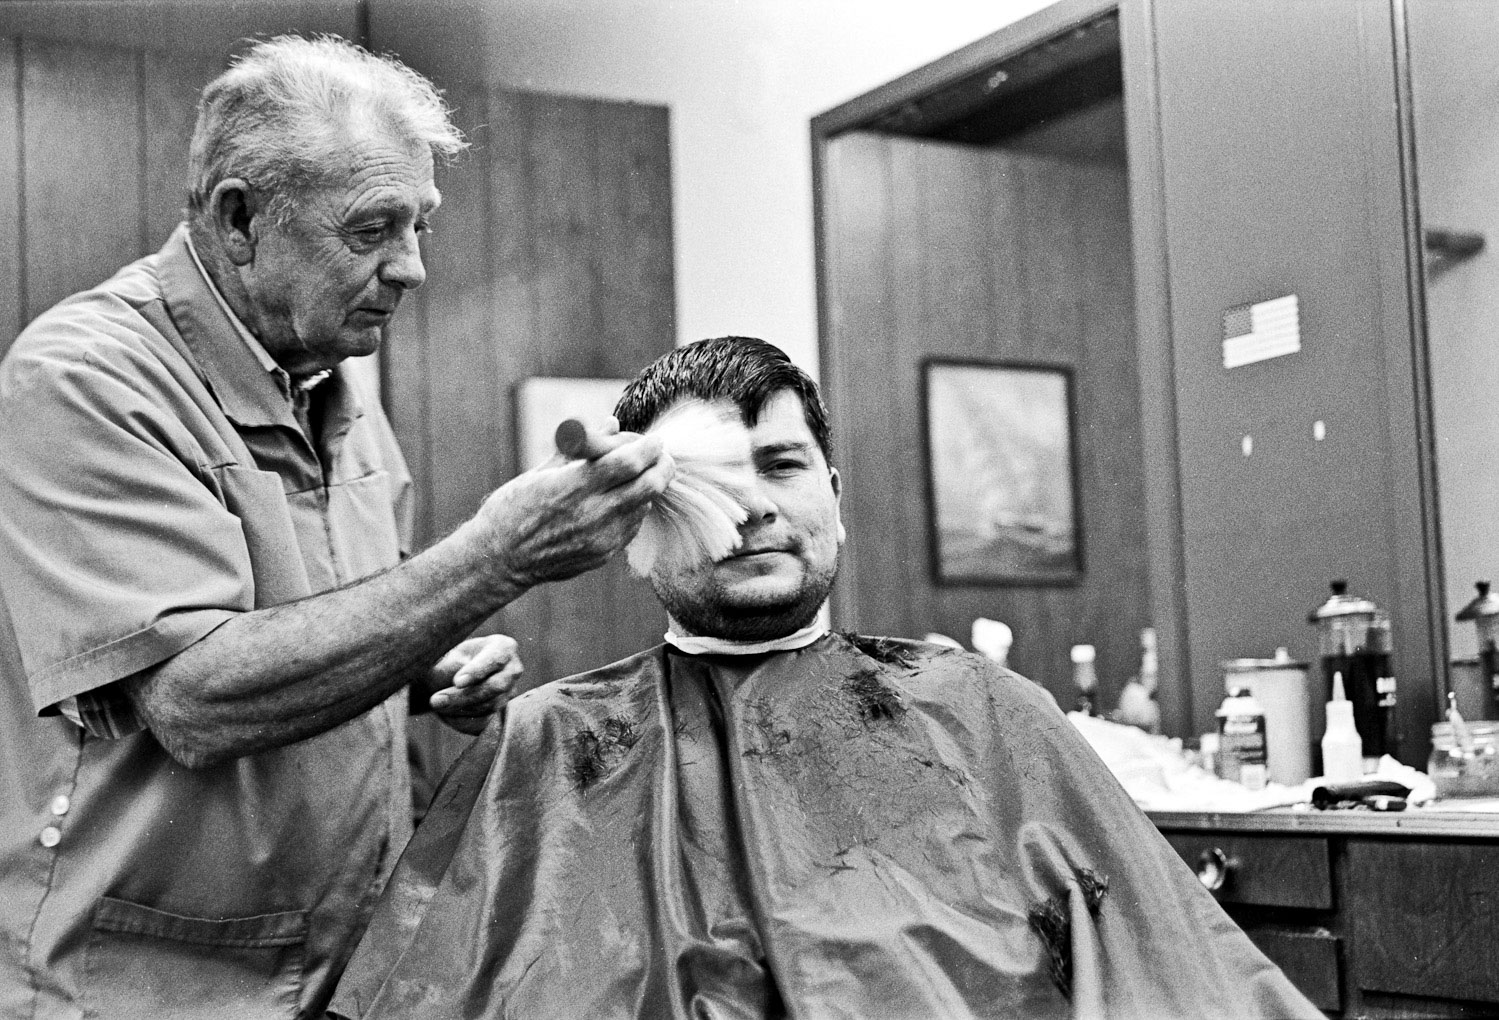 St. Johns Barber Shop man getting a haircut